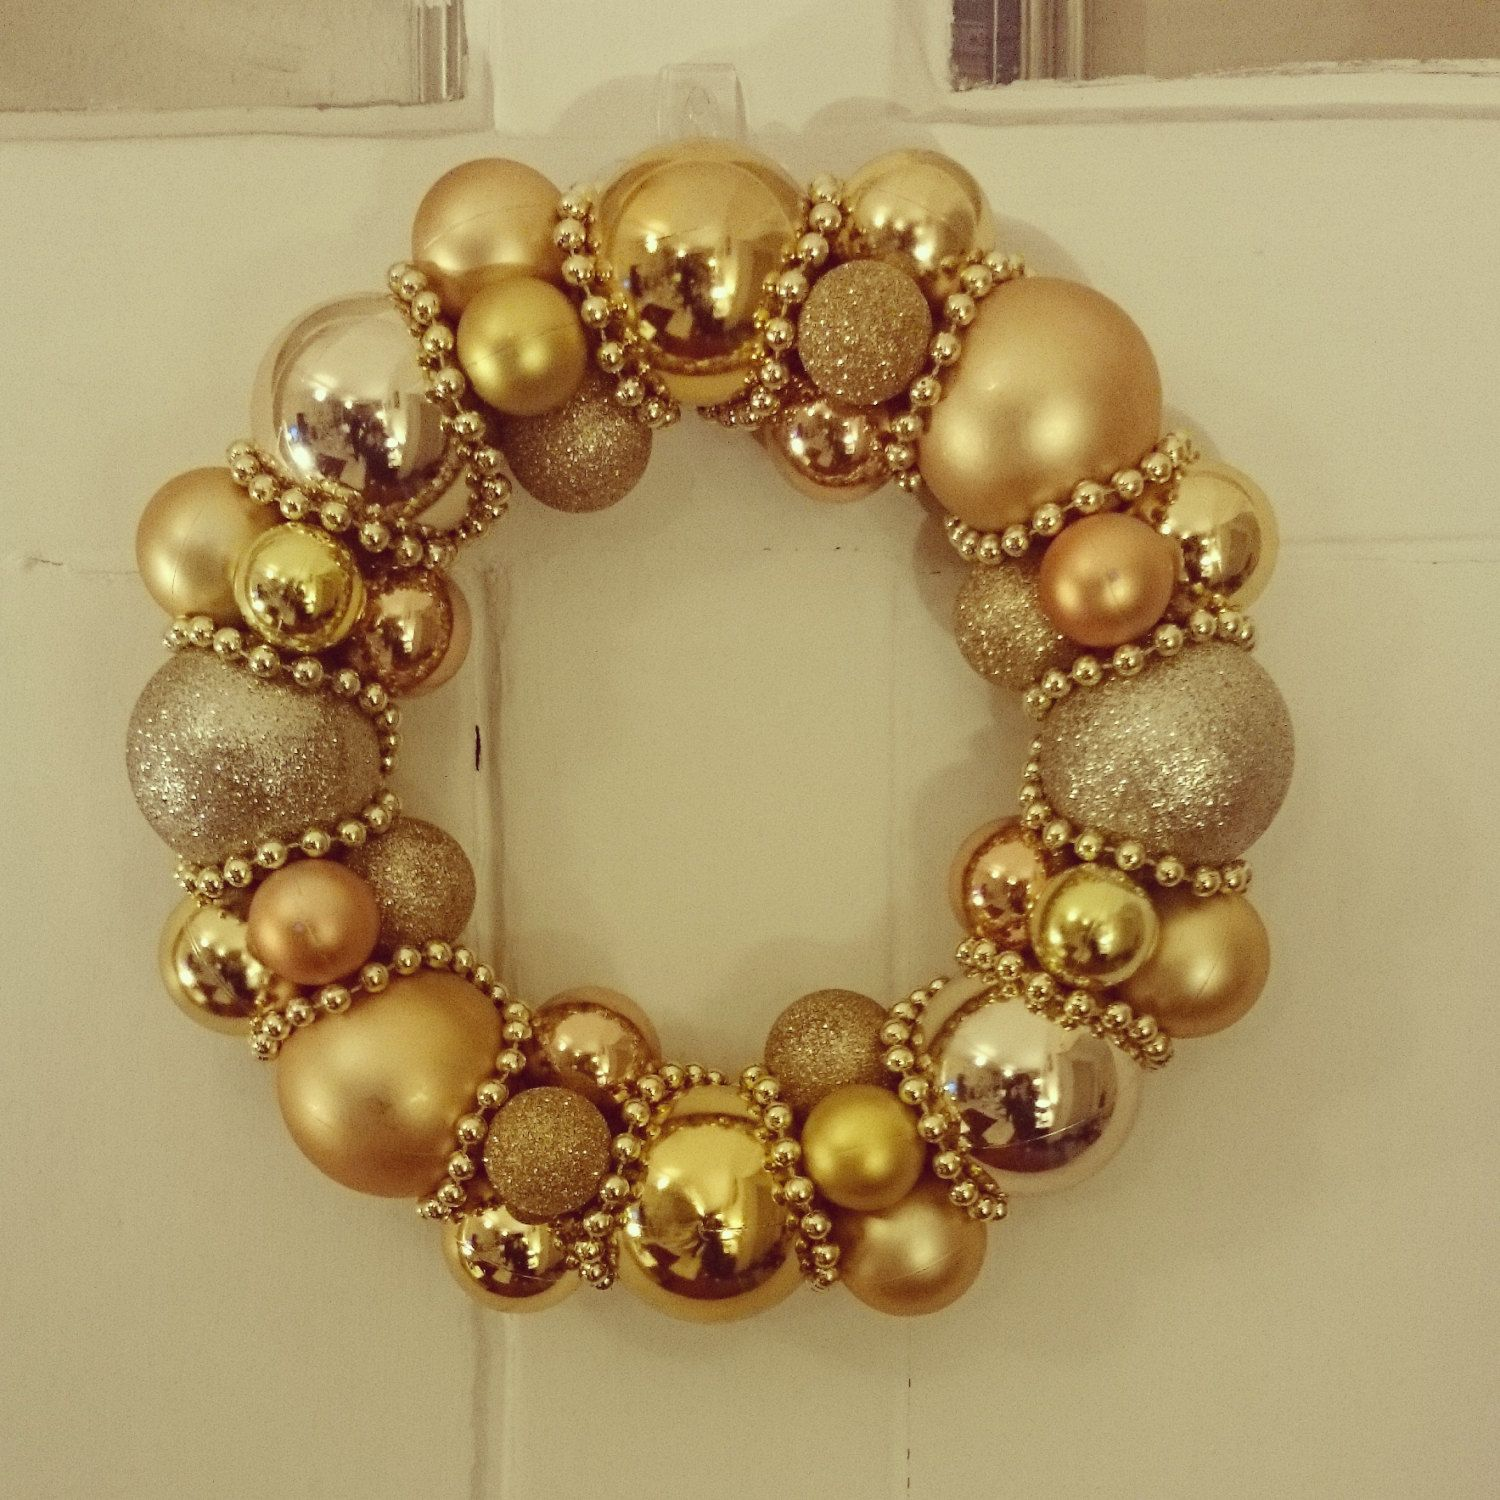 Items similar to Gold Christmas Bauble Wreath Decoration on Etsy